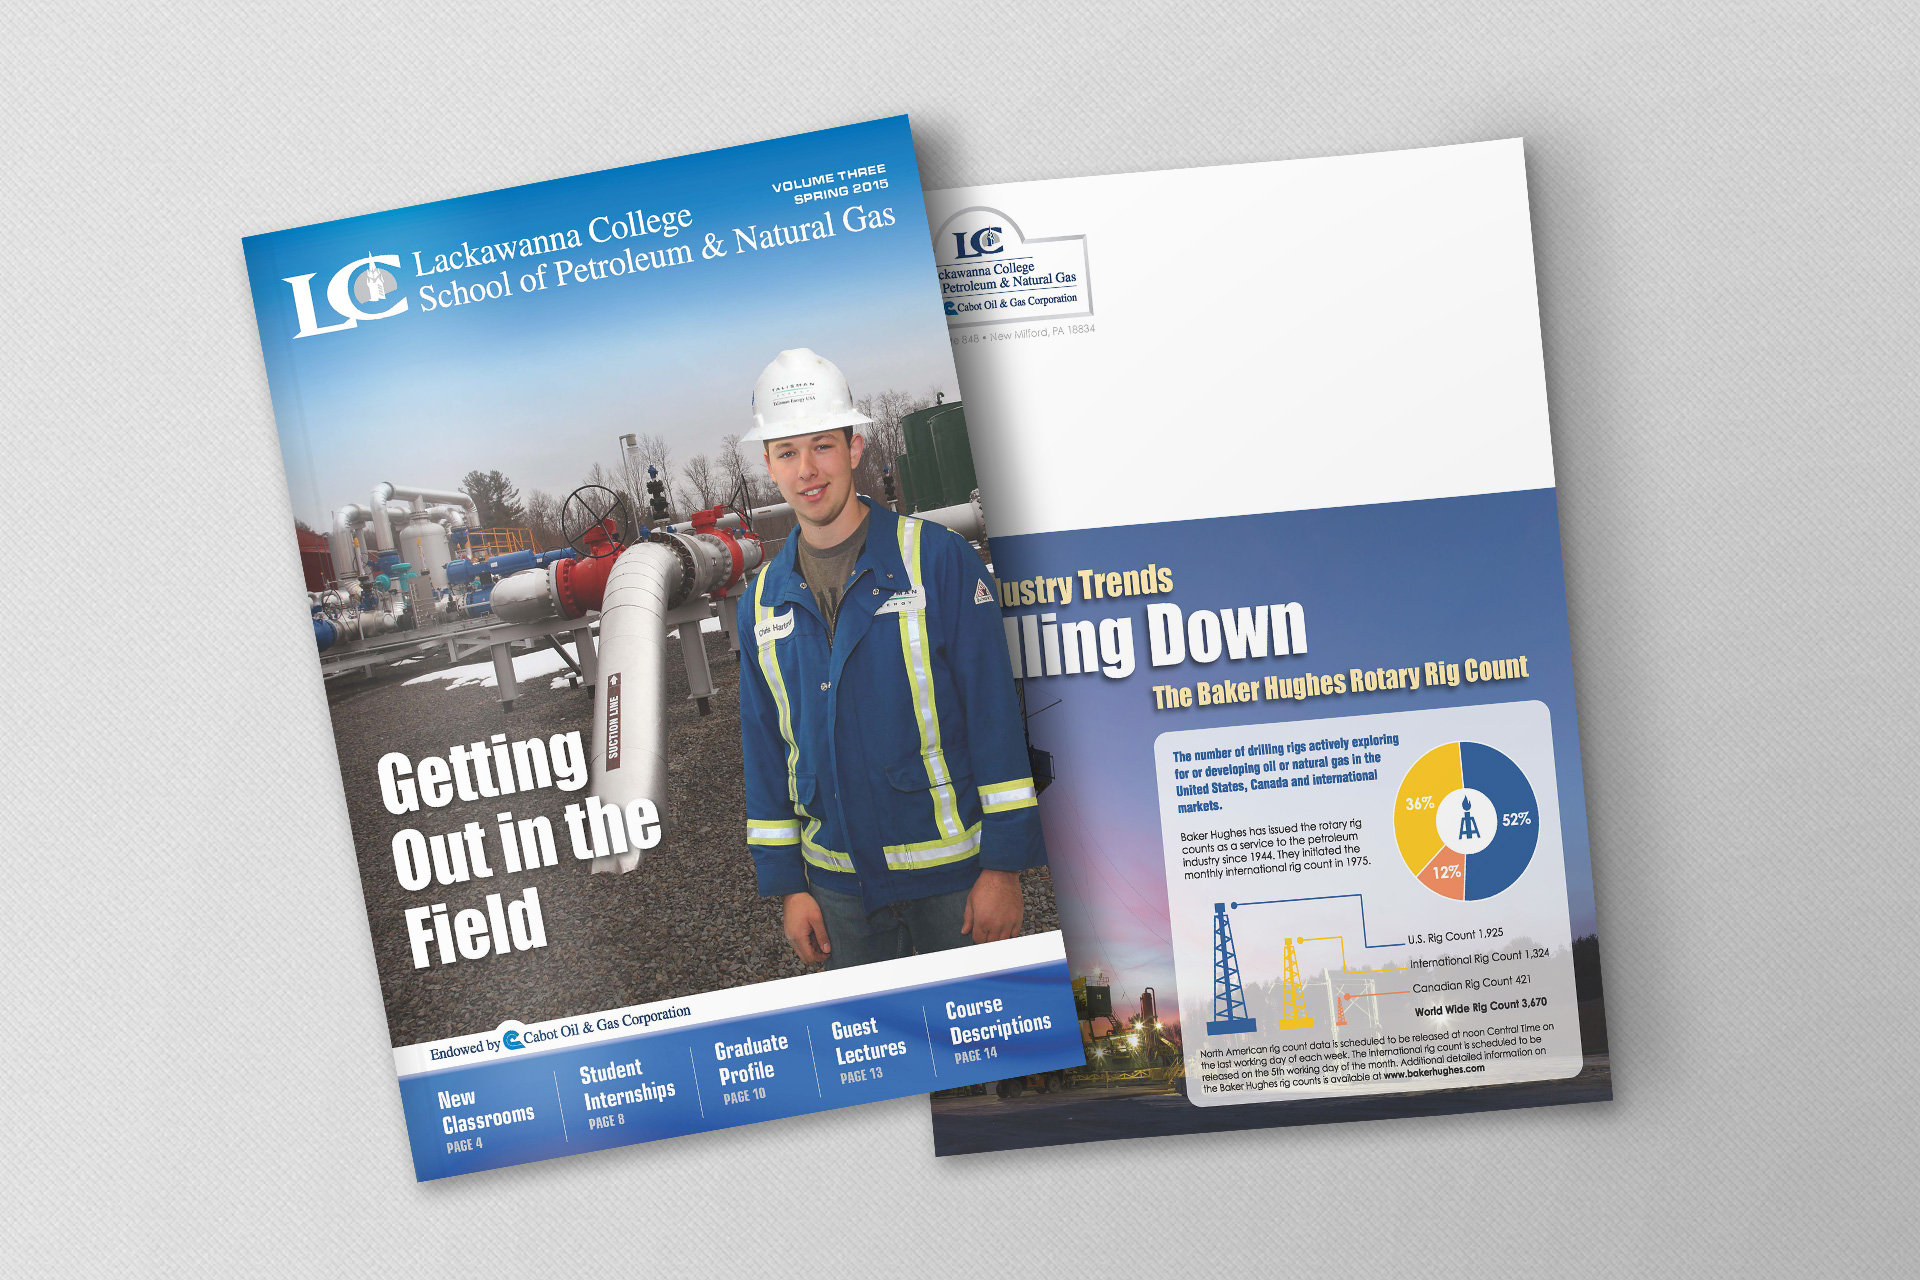 Lackawanna College, Cabot Oil & Gas Corporation – School of Petroleum & Natural Gas Magazine